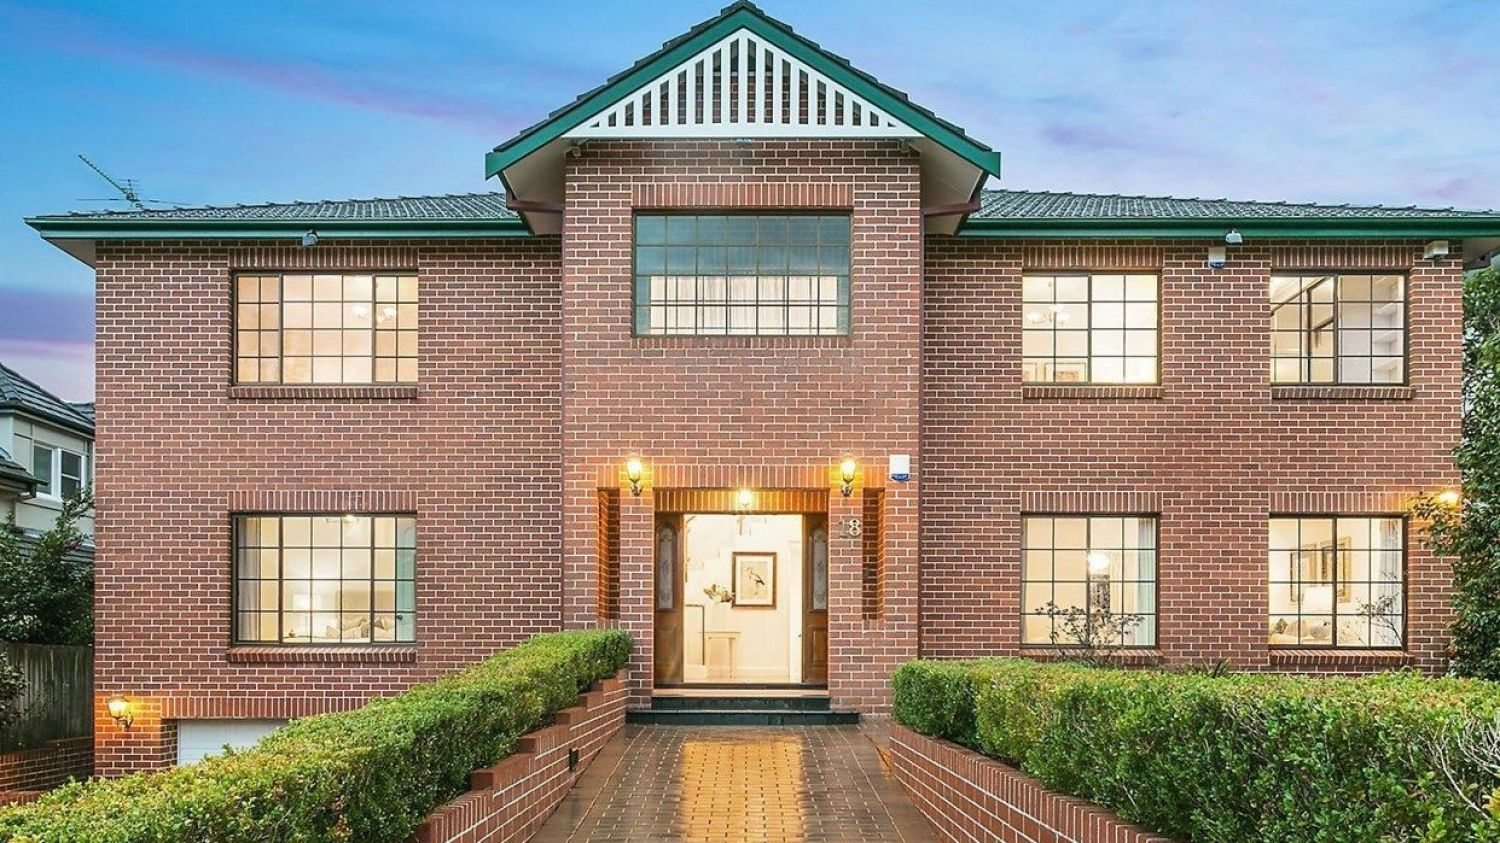 Clearance Rate Sydney Sydneys Auction Clearance Rate Continues To Drop With 51